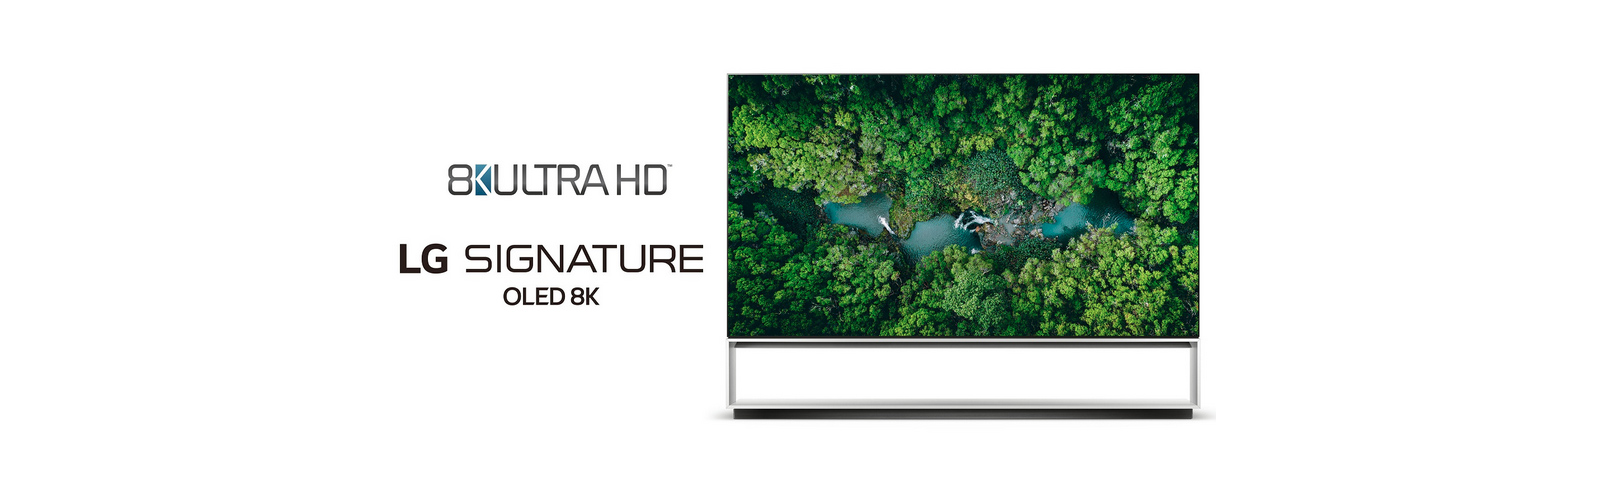 All 2020 LG 8K TVs have received an 8K UHD certification from the CTA